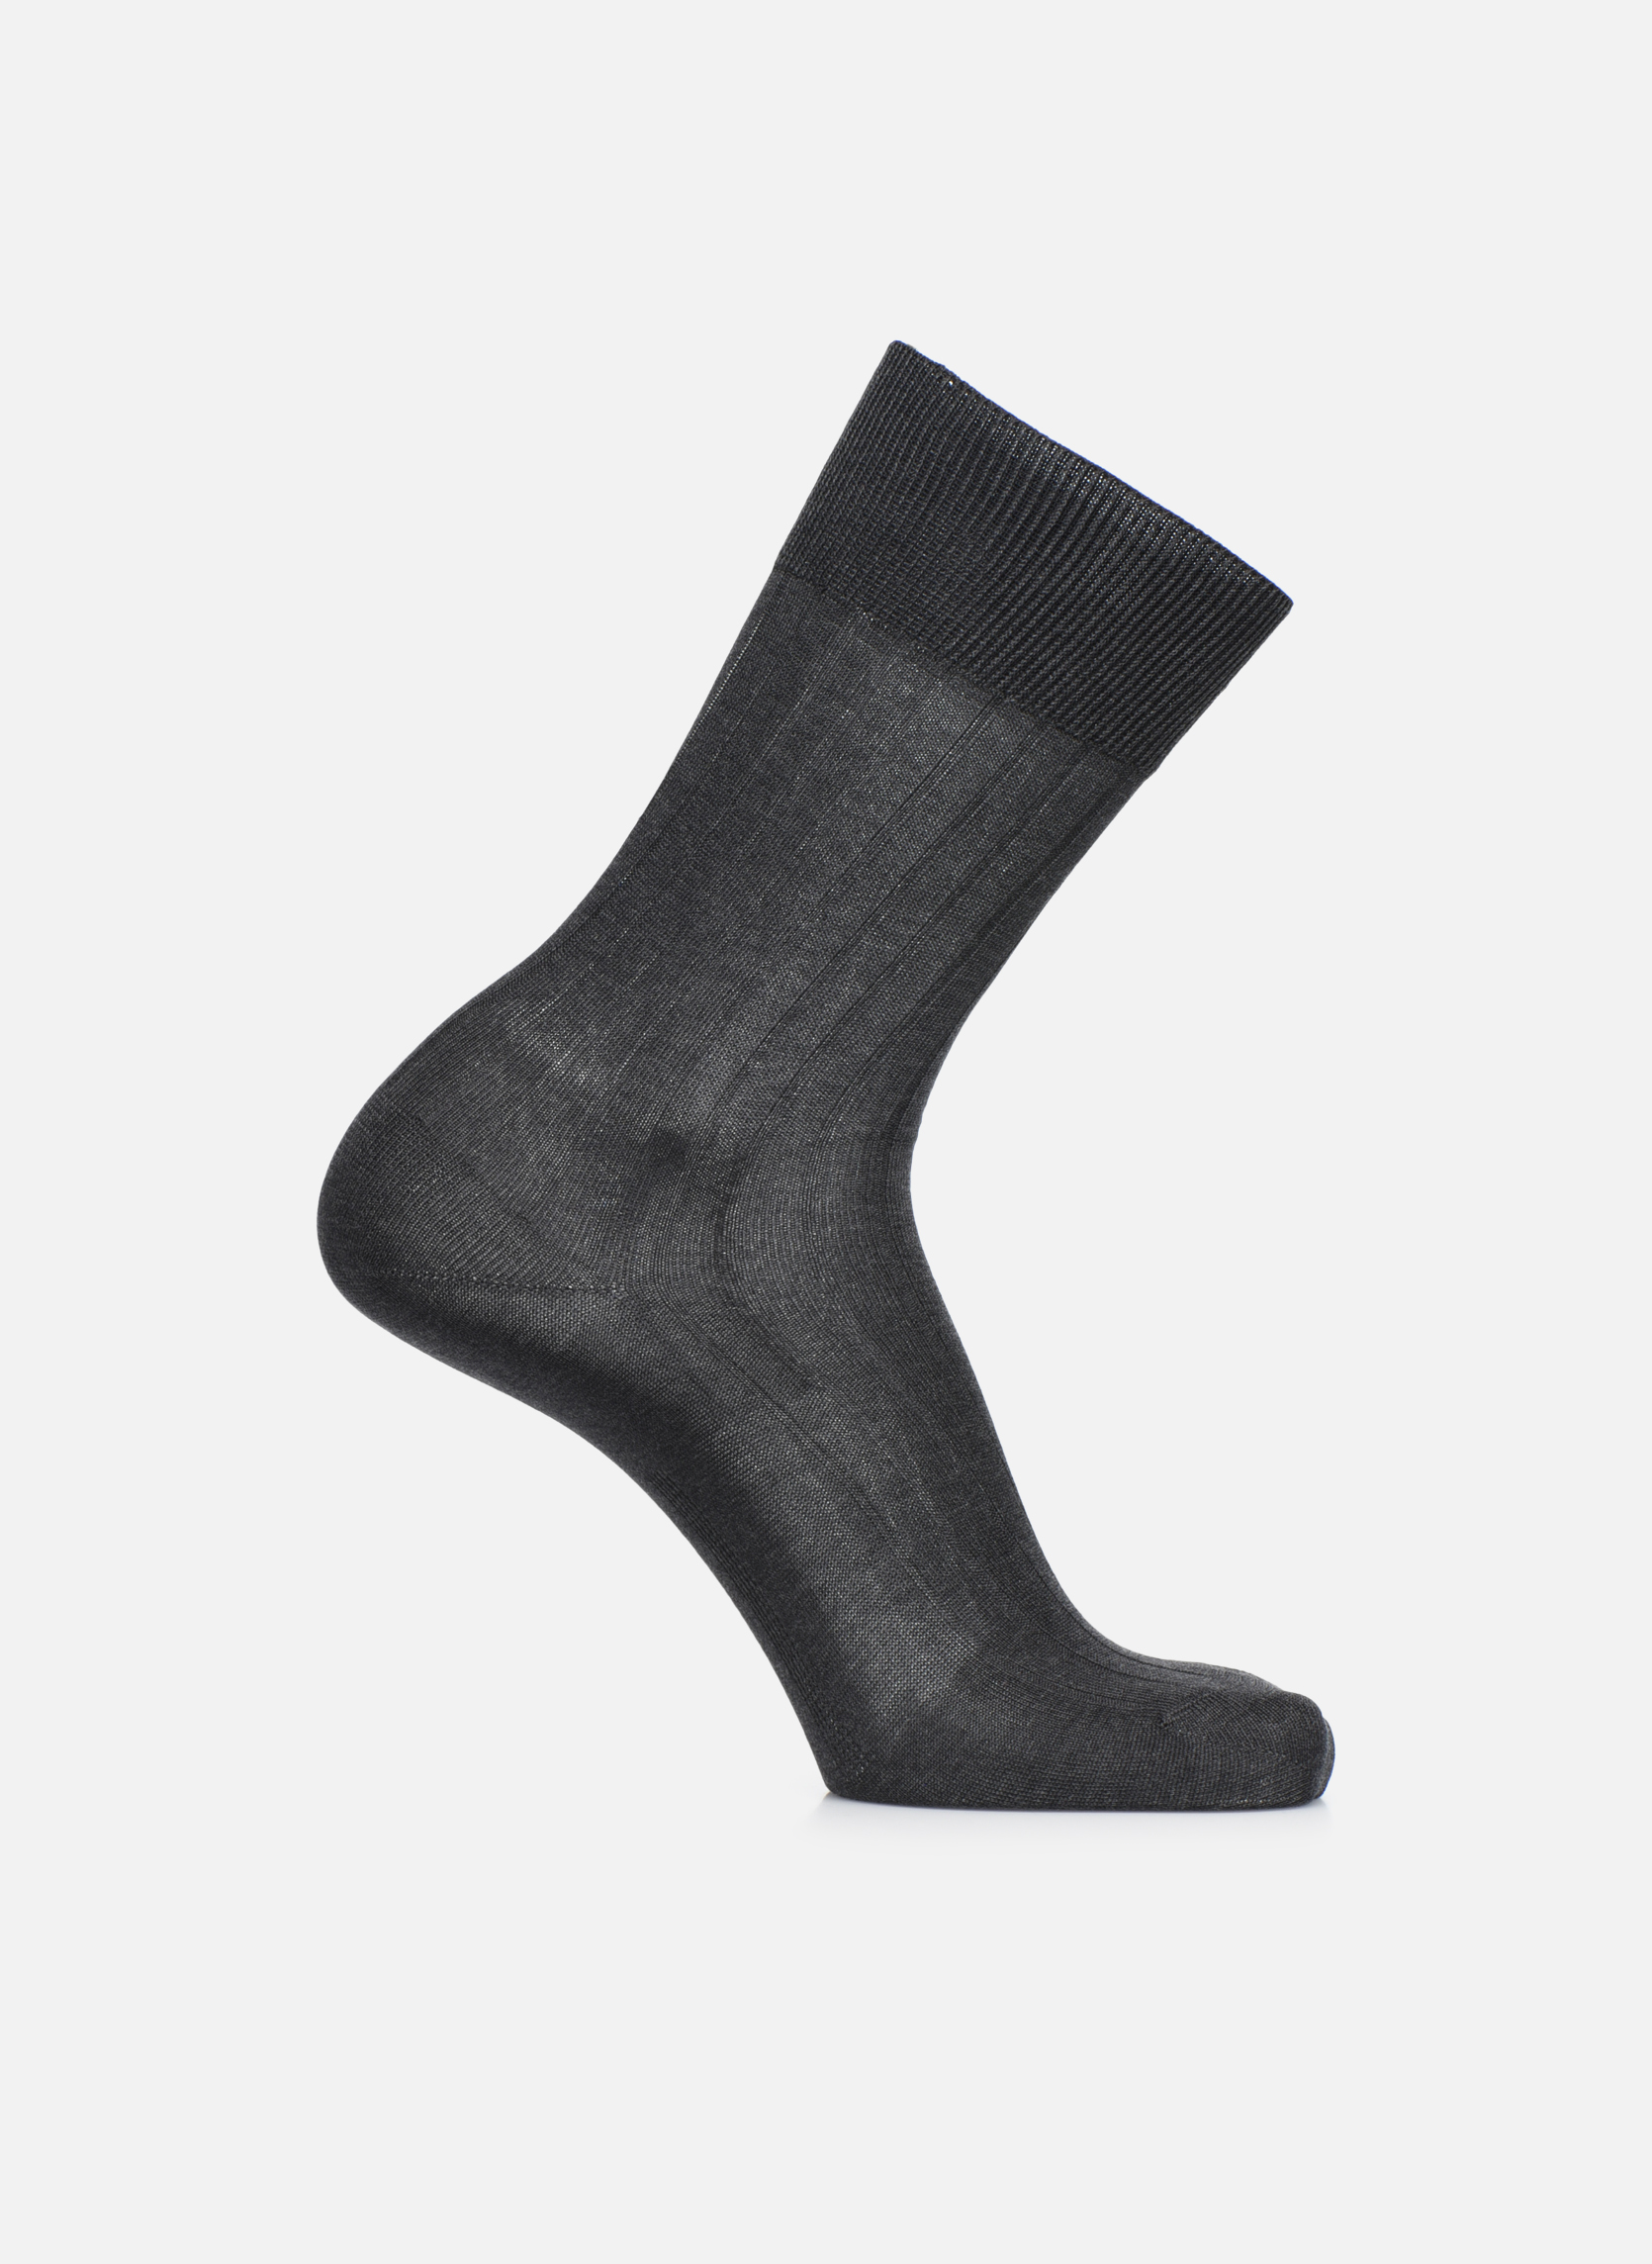 Chaussettes MILANO 3190 anthracite